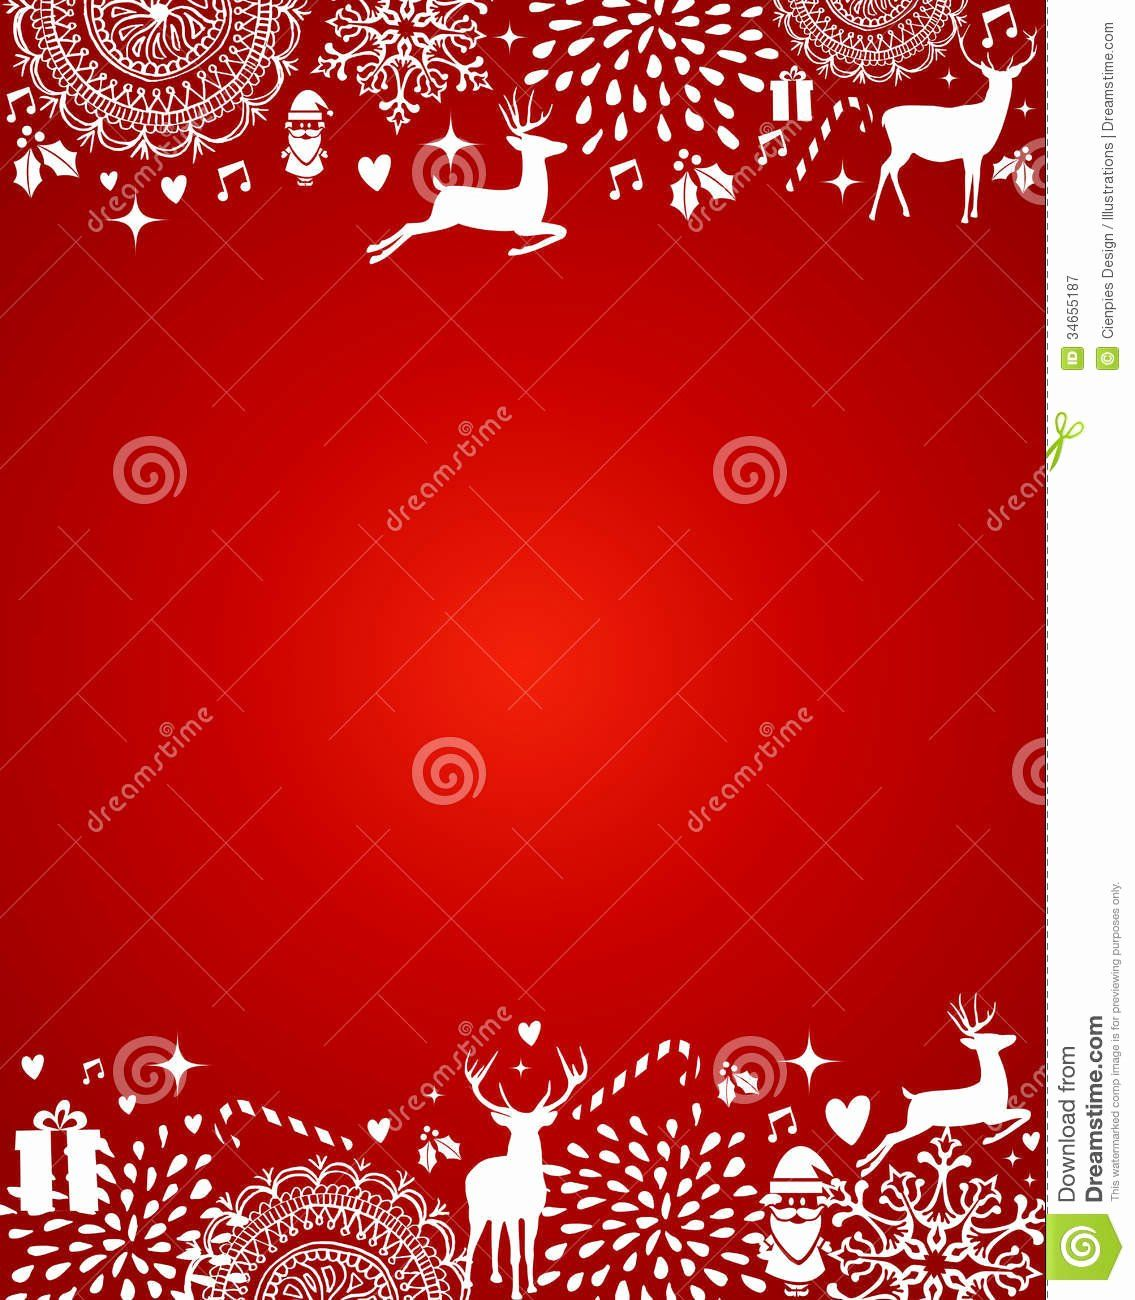 Free Background Templates For Word Awesome Merry Christmas Template Free Christmas Flyer Templates Christmas Card Template Christmas Invitations Template